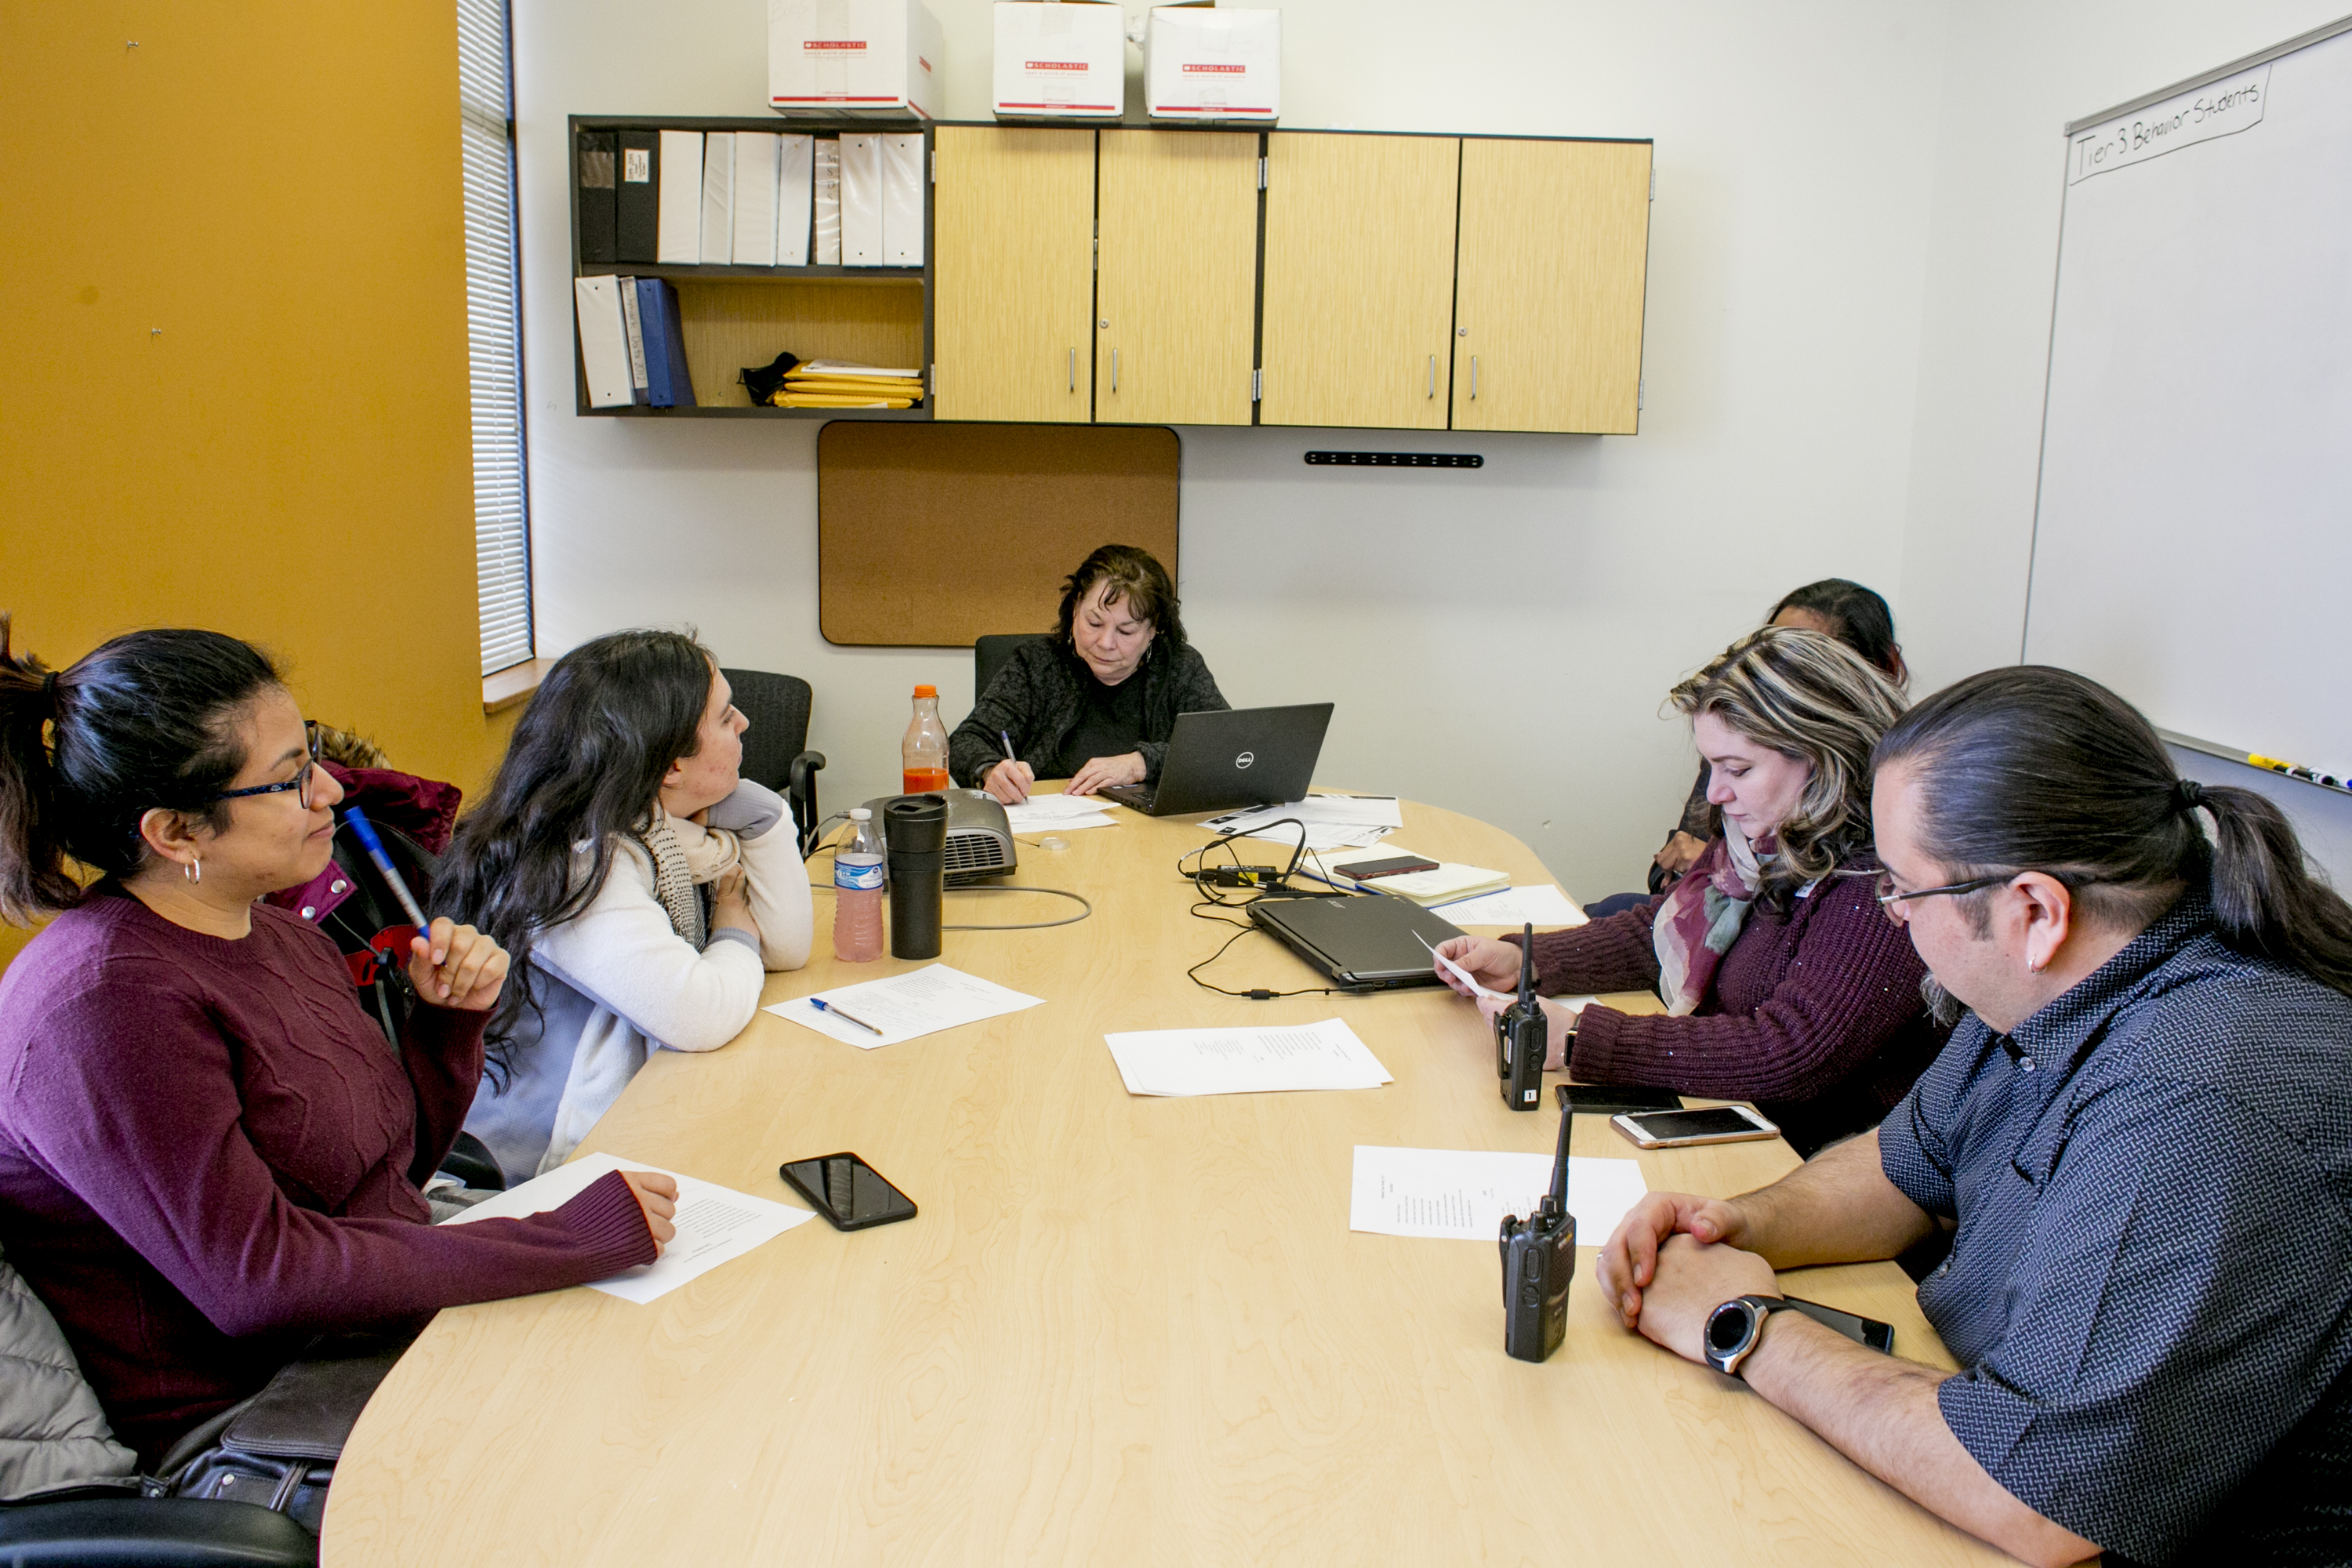 An attendance team meeting at Earhart Elementary-Middle School in southwest Detroit includes staff from the school and a community organization.